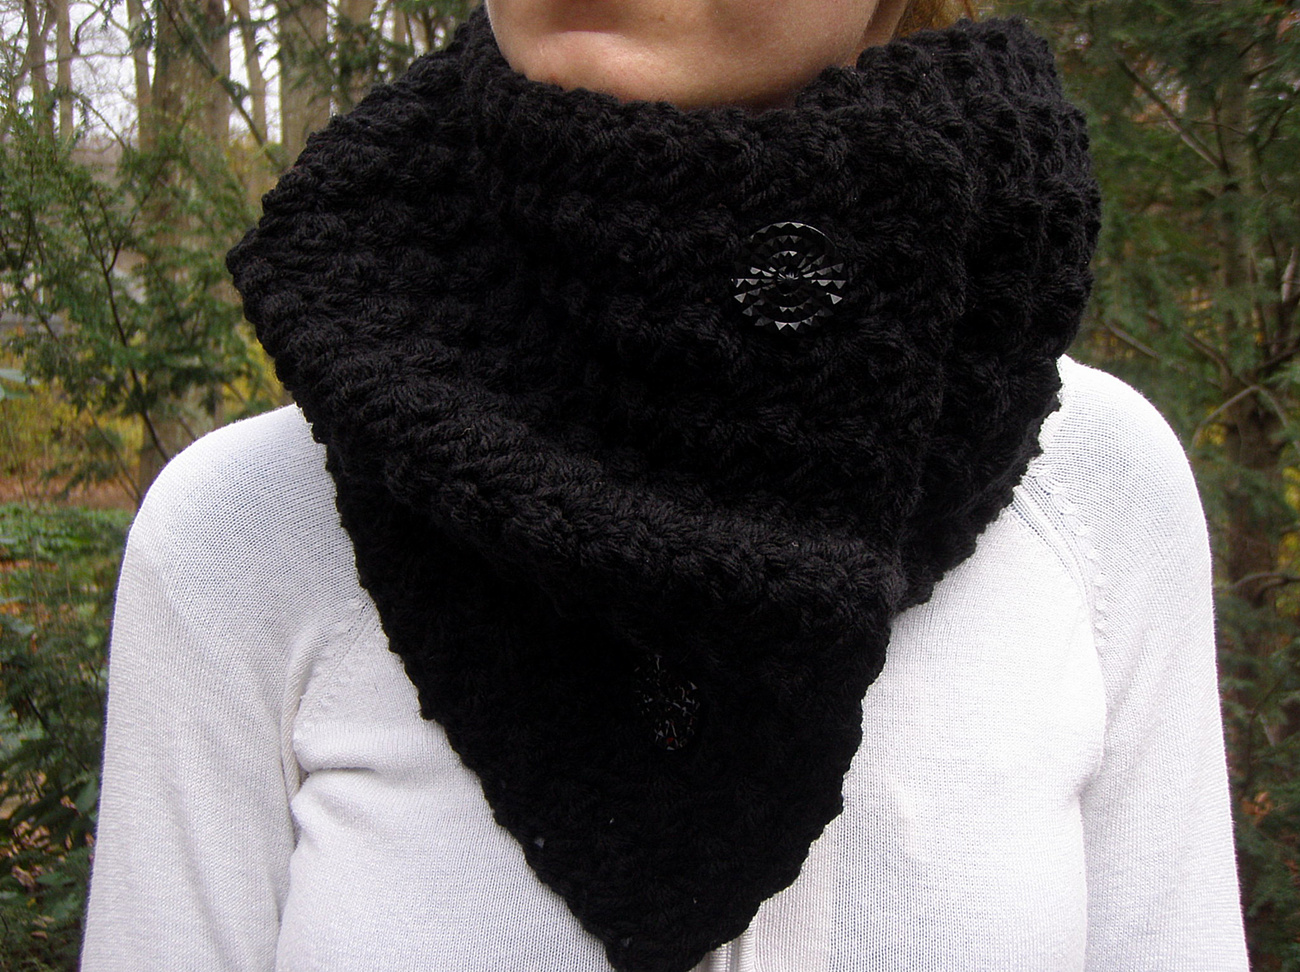 Black_cowl_02.jpg